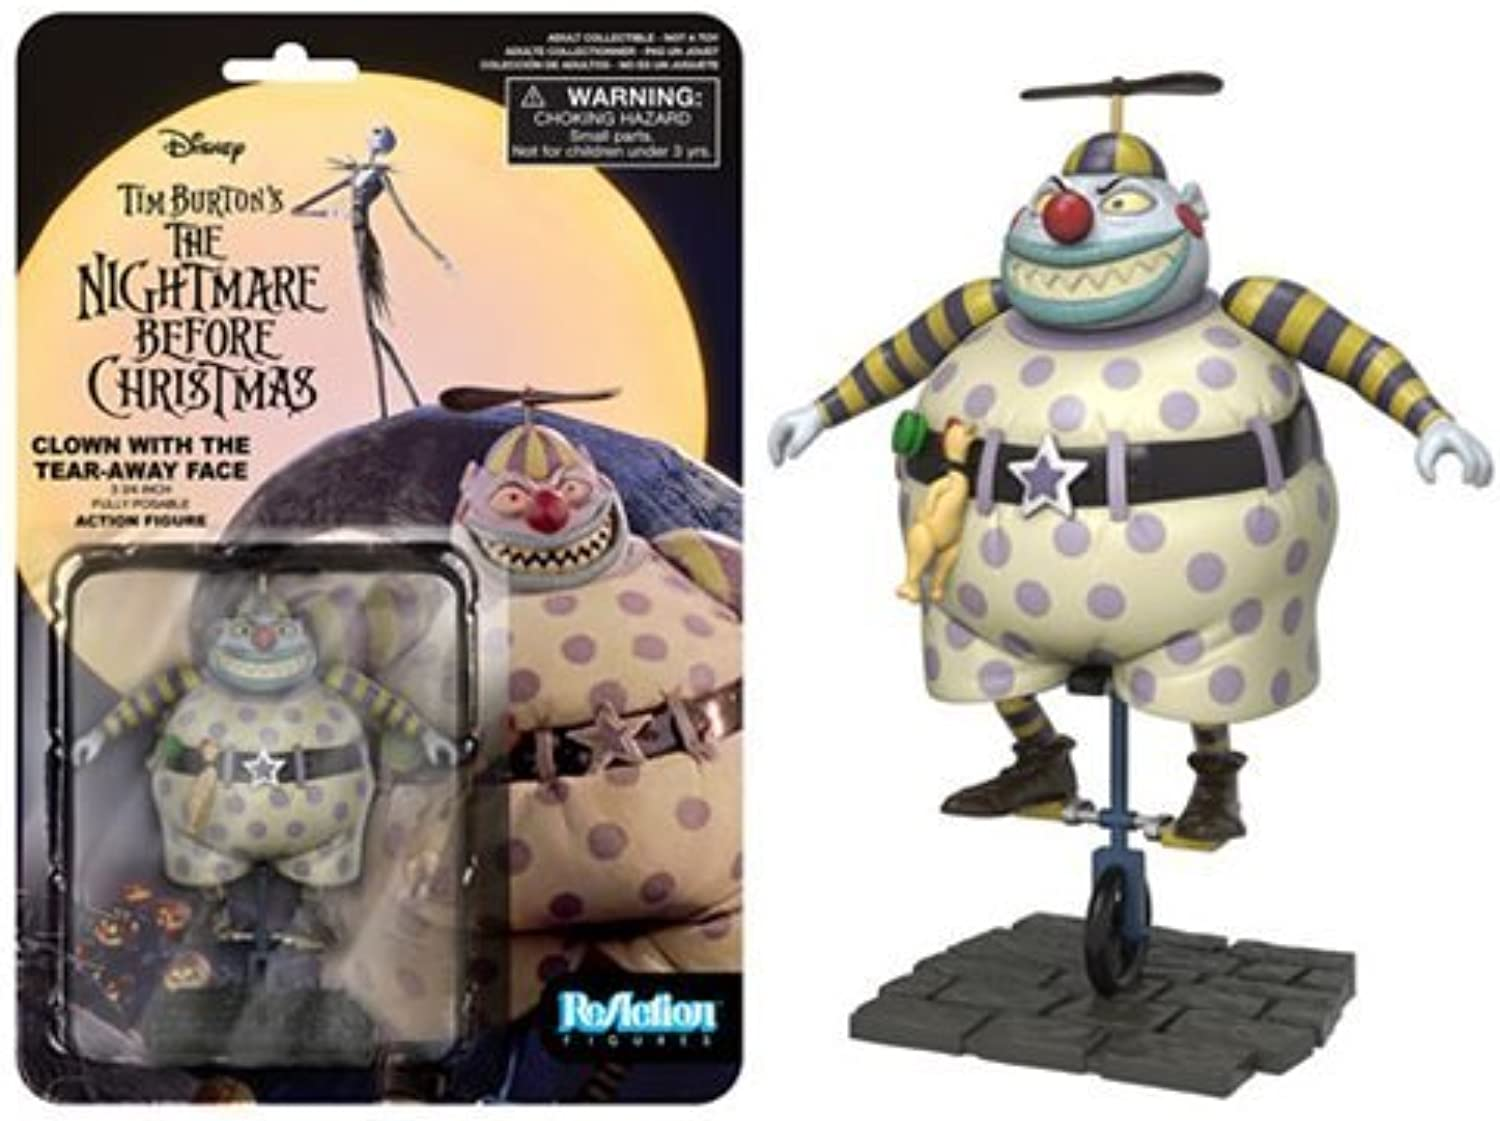 The Nightmare Before Christmas Clown Tear Away Face ReAction 3 3 4-Inch Retro Action Figure by The Nightmare Before Christmas